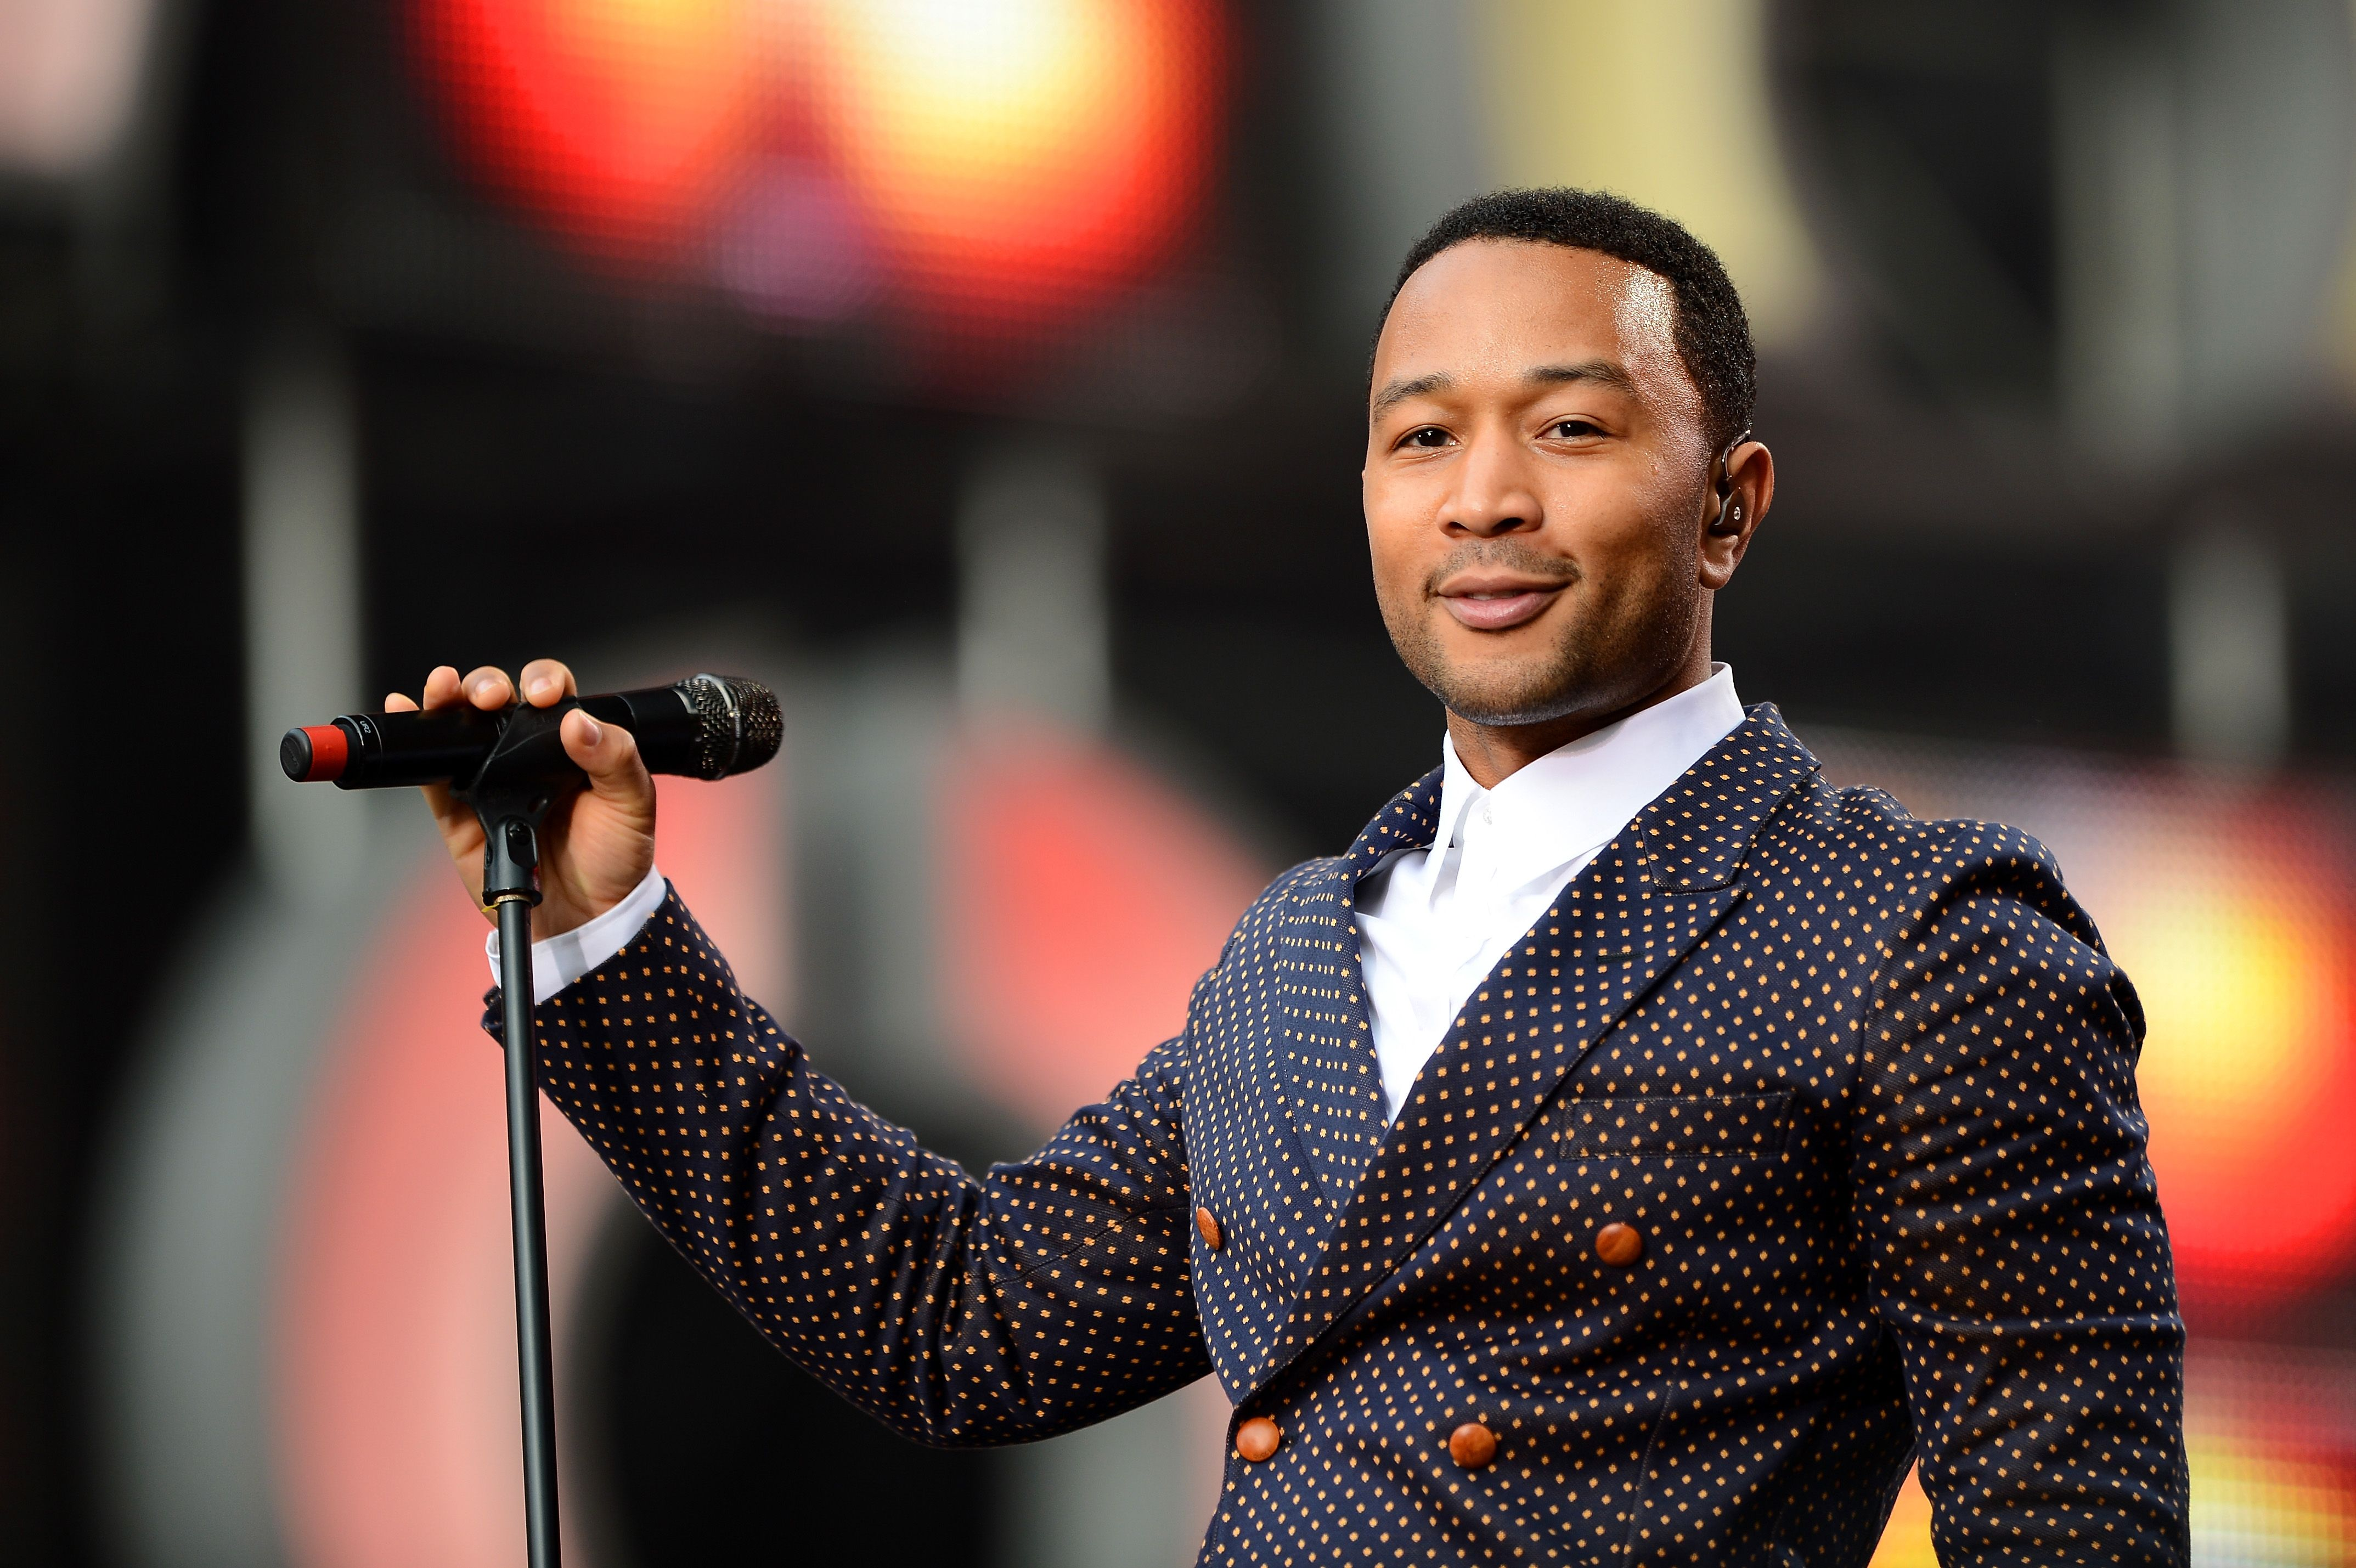 John Legend had at least 4 casual relationships before meeting his wife / Getty Images